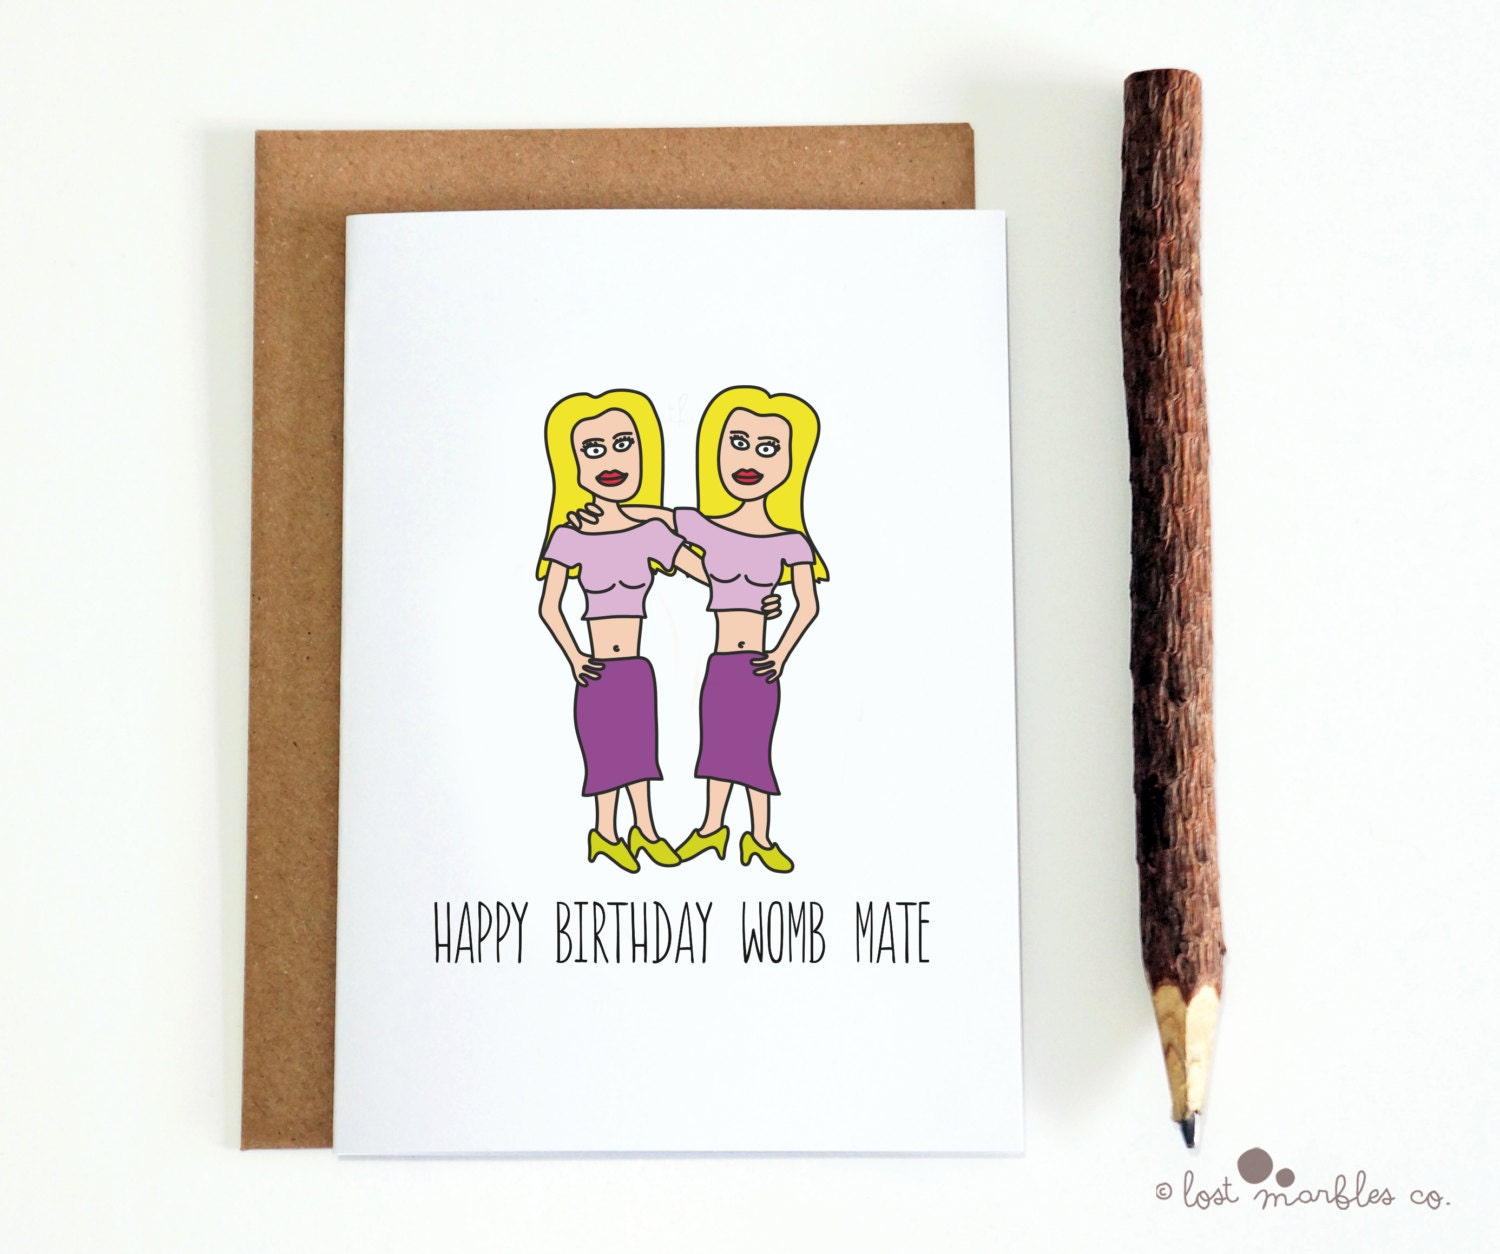 Cute birthday card twins birthday card her birthday card zoom kristyandbryce Gallery